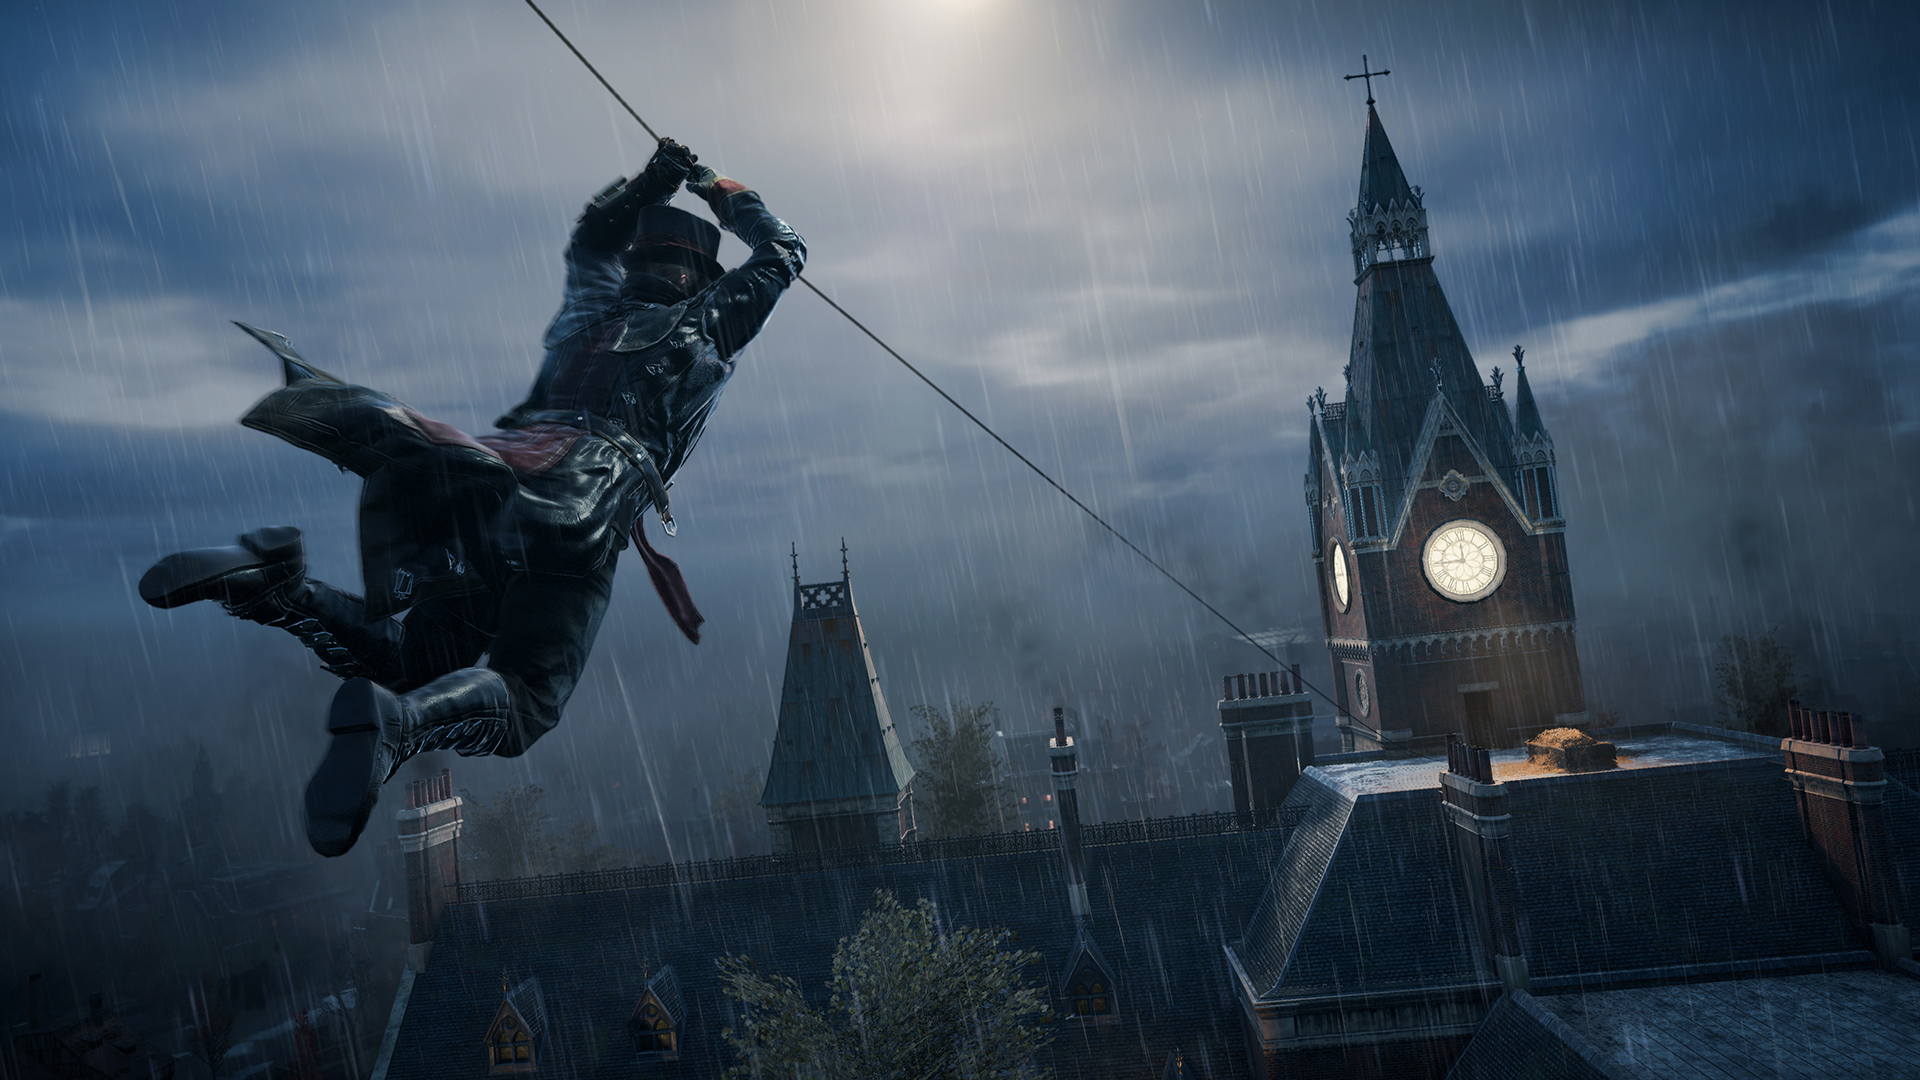 Assassin S Creed Syndicate Gets Playstation 4 Pro Support Time Images, Photos, Reviews